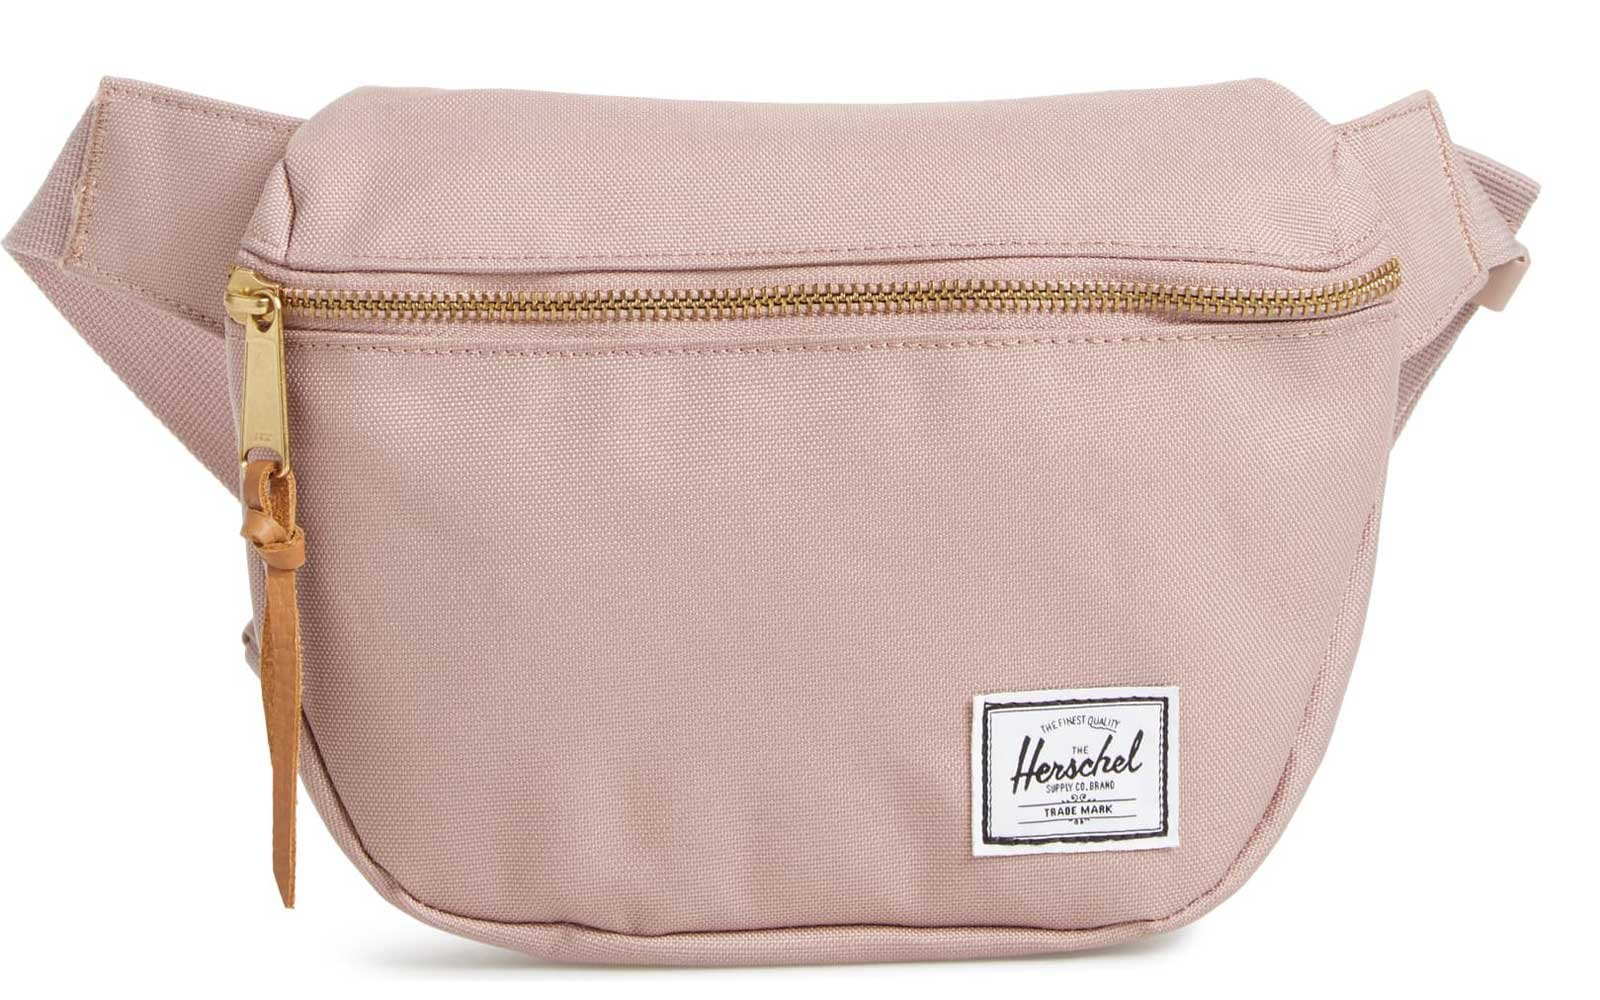 Light Pink Herschel Belt Bag